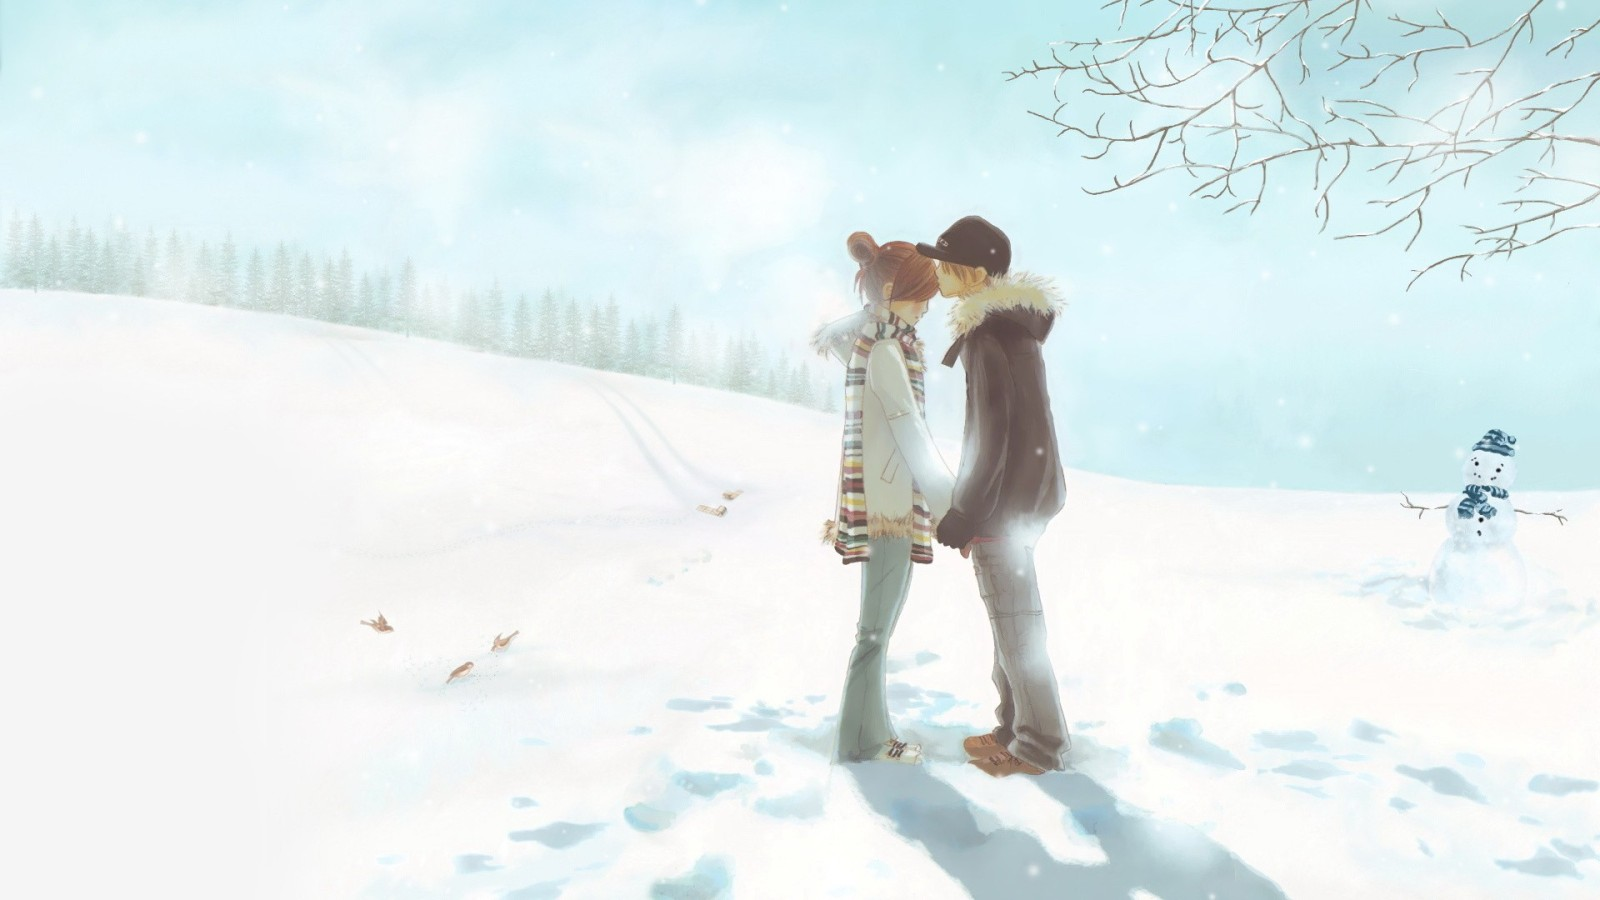 Cute Anime Winter wallpaper 1600x900 14744 1600x900